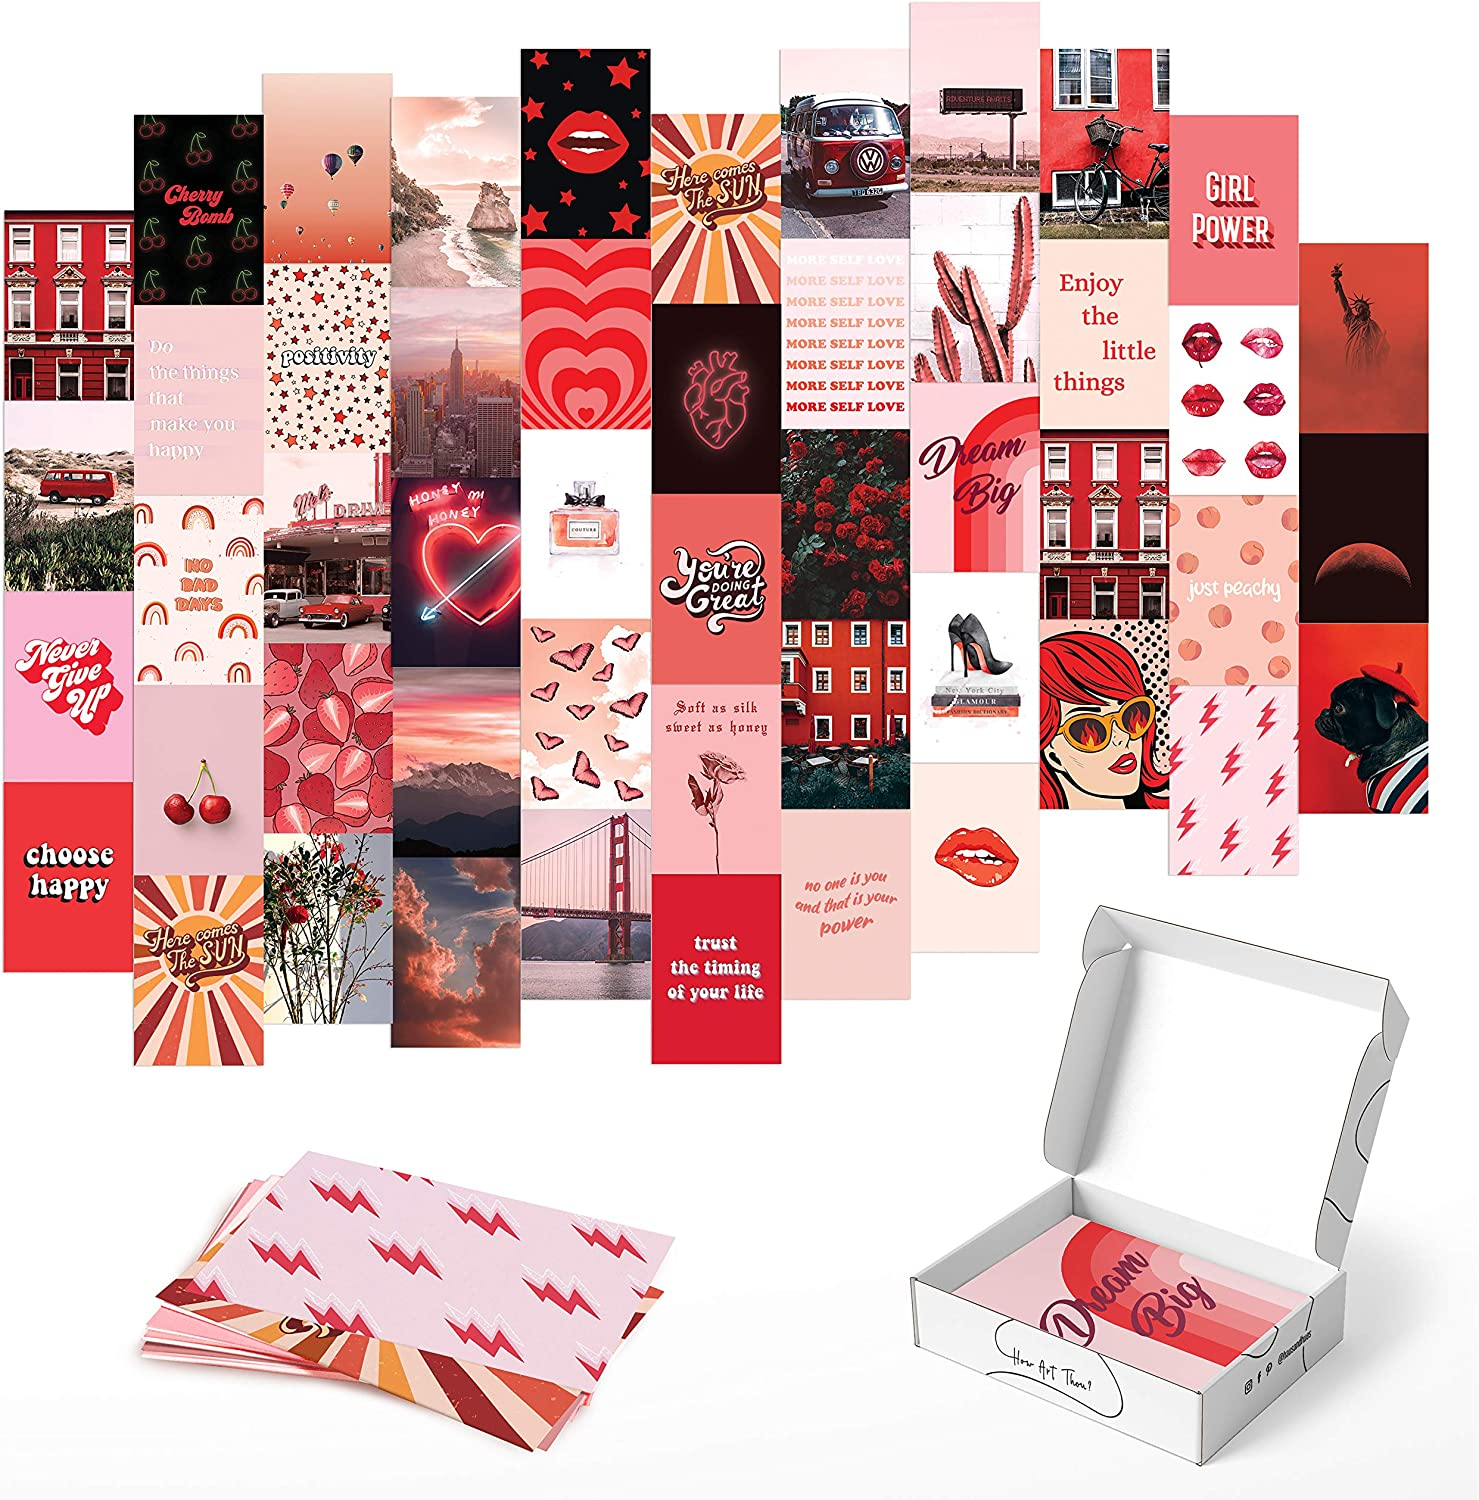 HAUS AND HUES Photo Collage Kit for Wall Aesthetic Decor Red Aesthetic Posters and Aesthetic Pictures for Wall Collage | Aesthetic Wall Collage Kit Prints | VCSO Room Decor